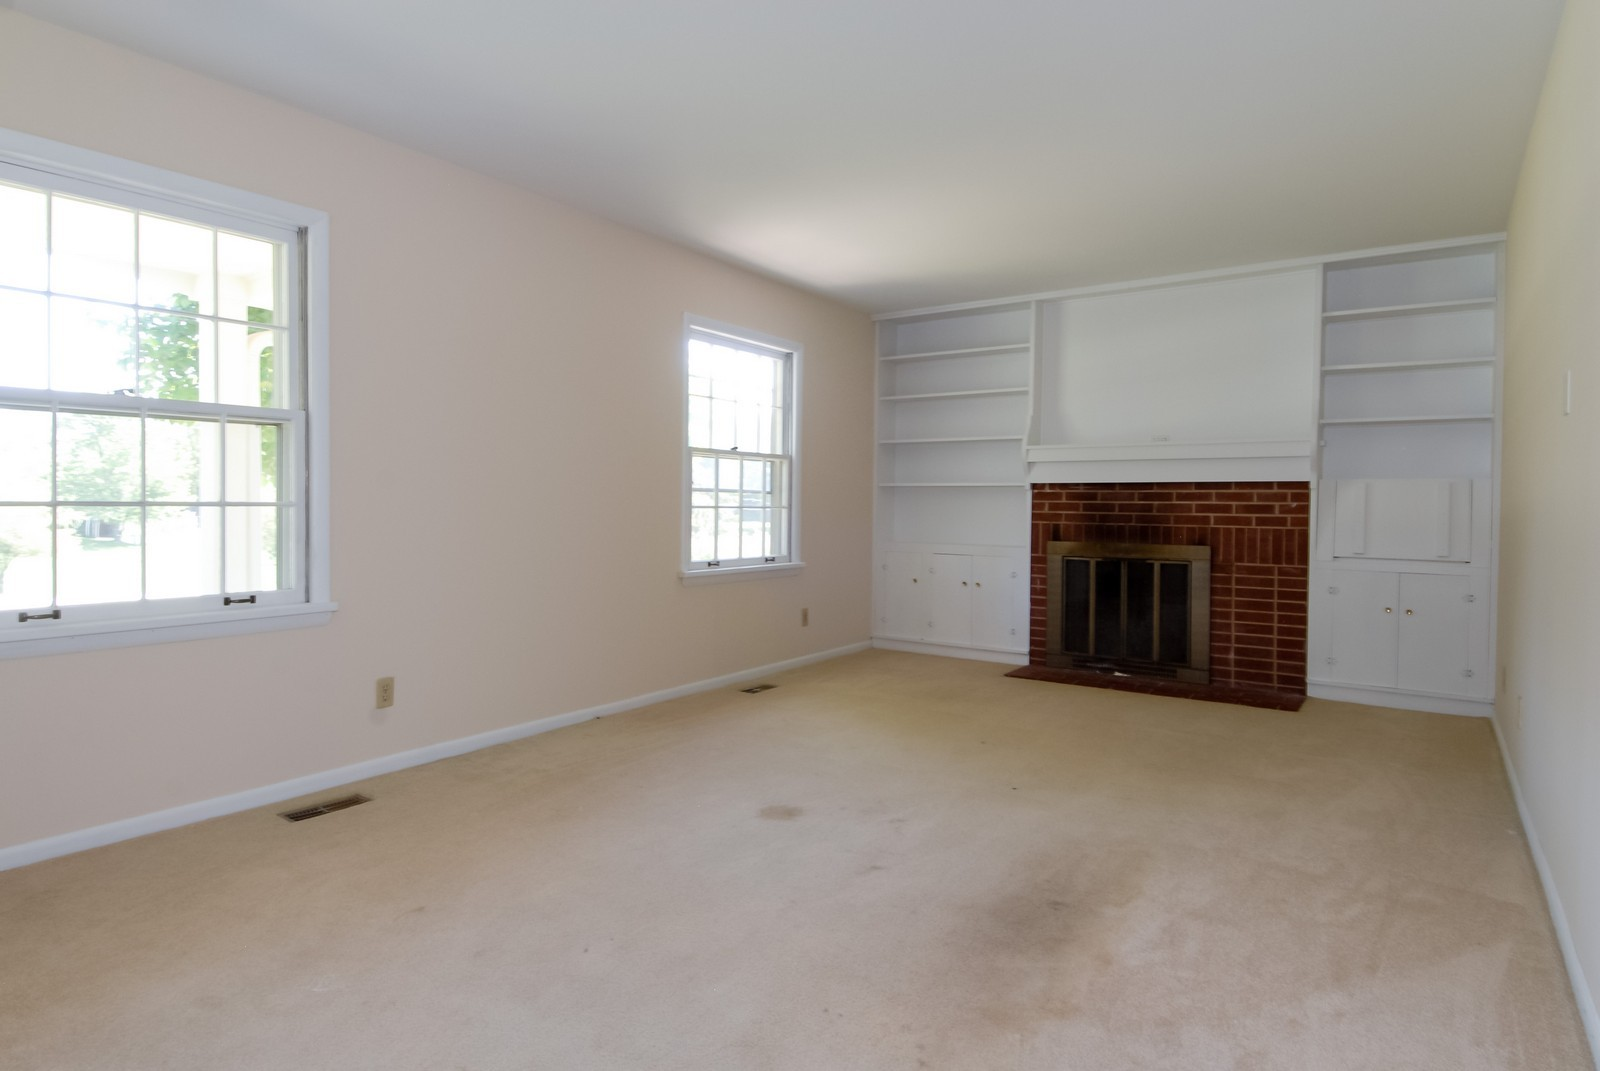 Real Estate Photography - 5N456 Old LaFox Rd, St Charles, IL, 60175 - Living Room